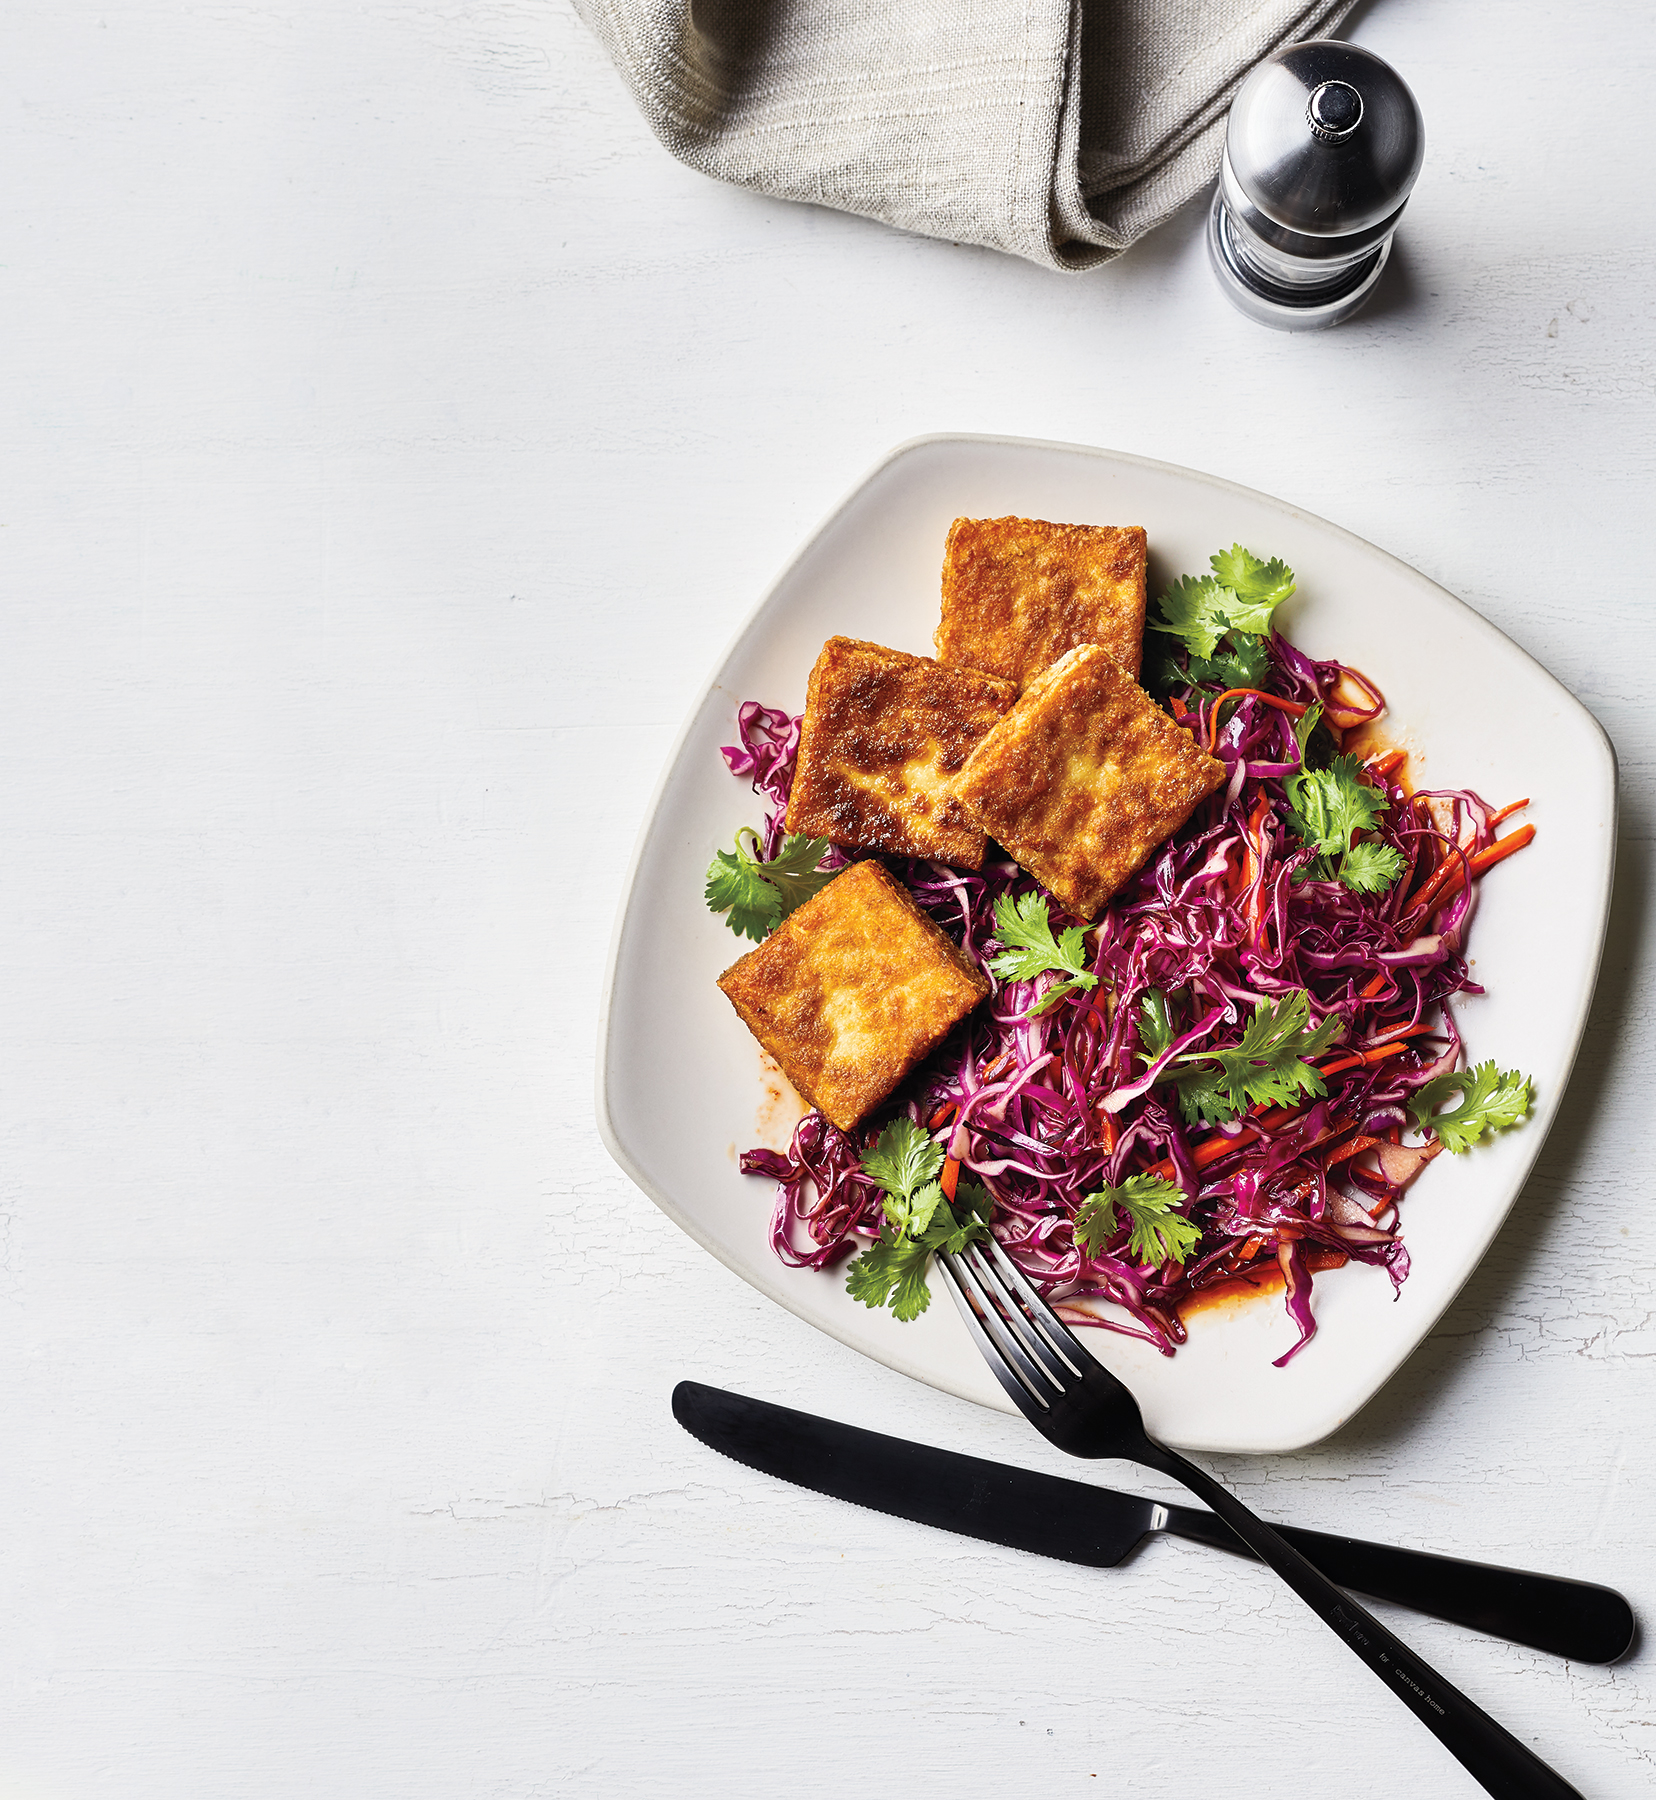 Crispy Tofu With Cabbage and Carrots